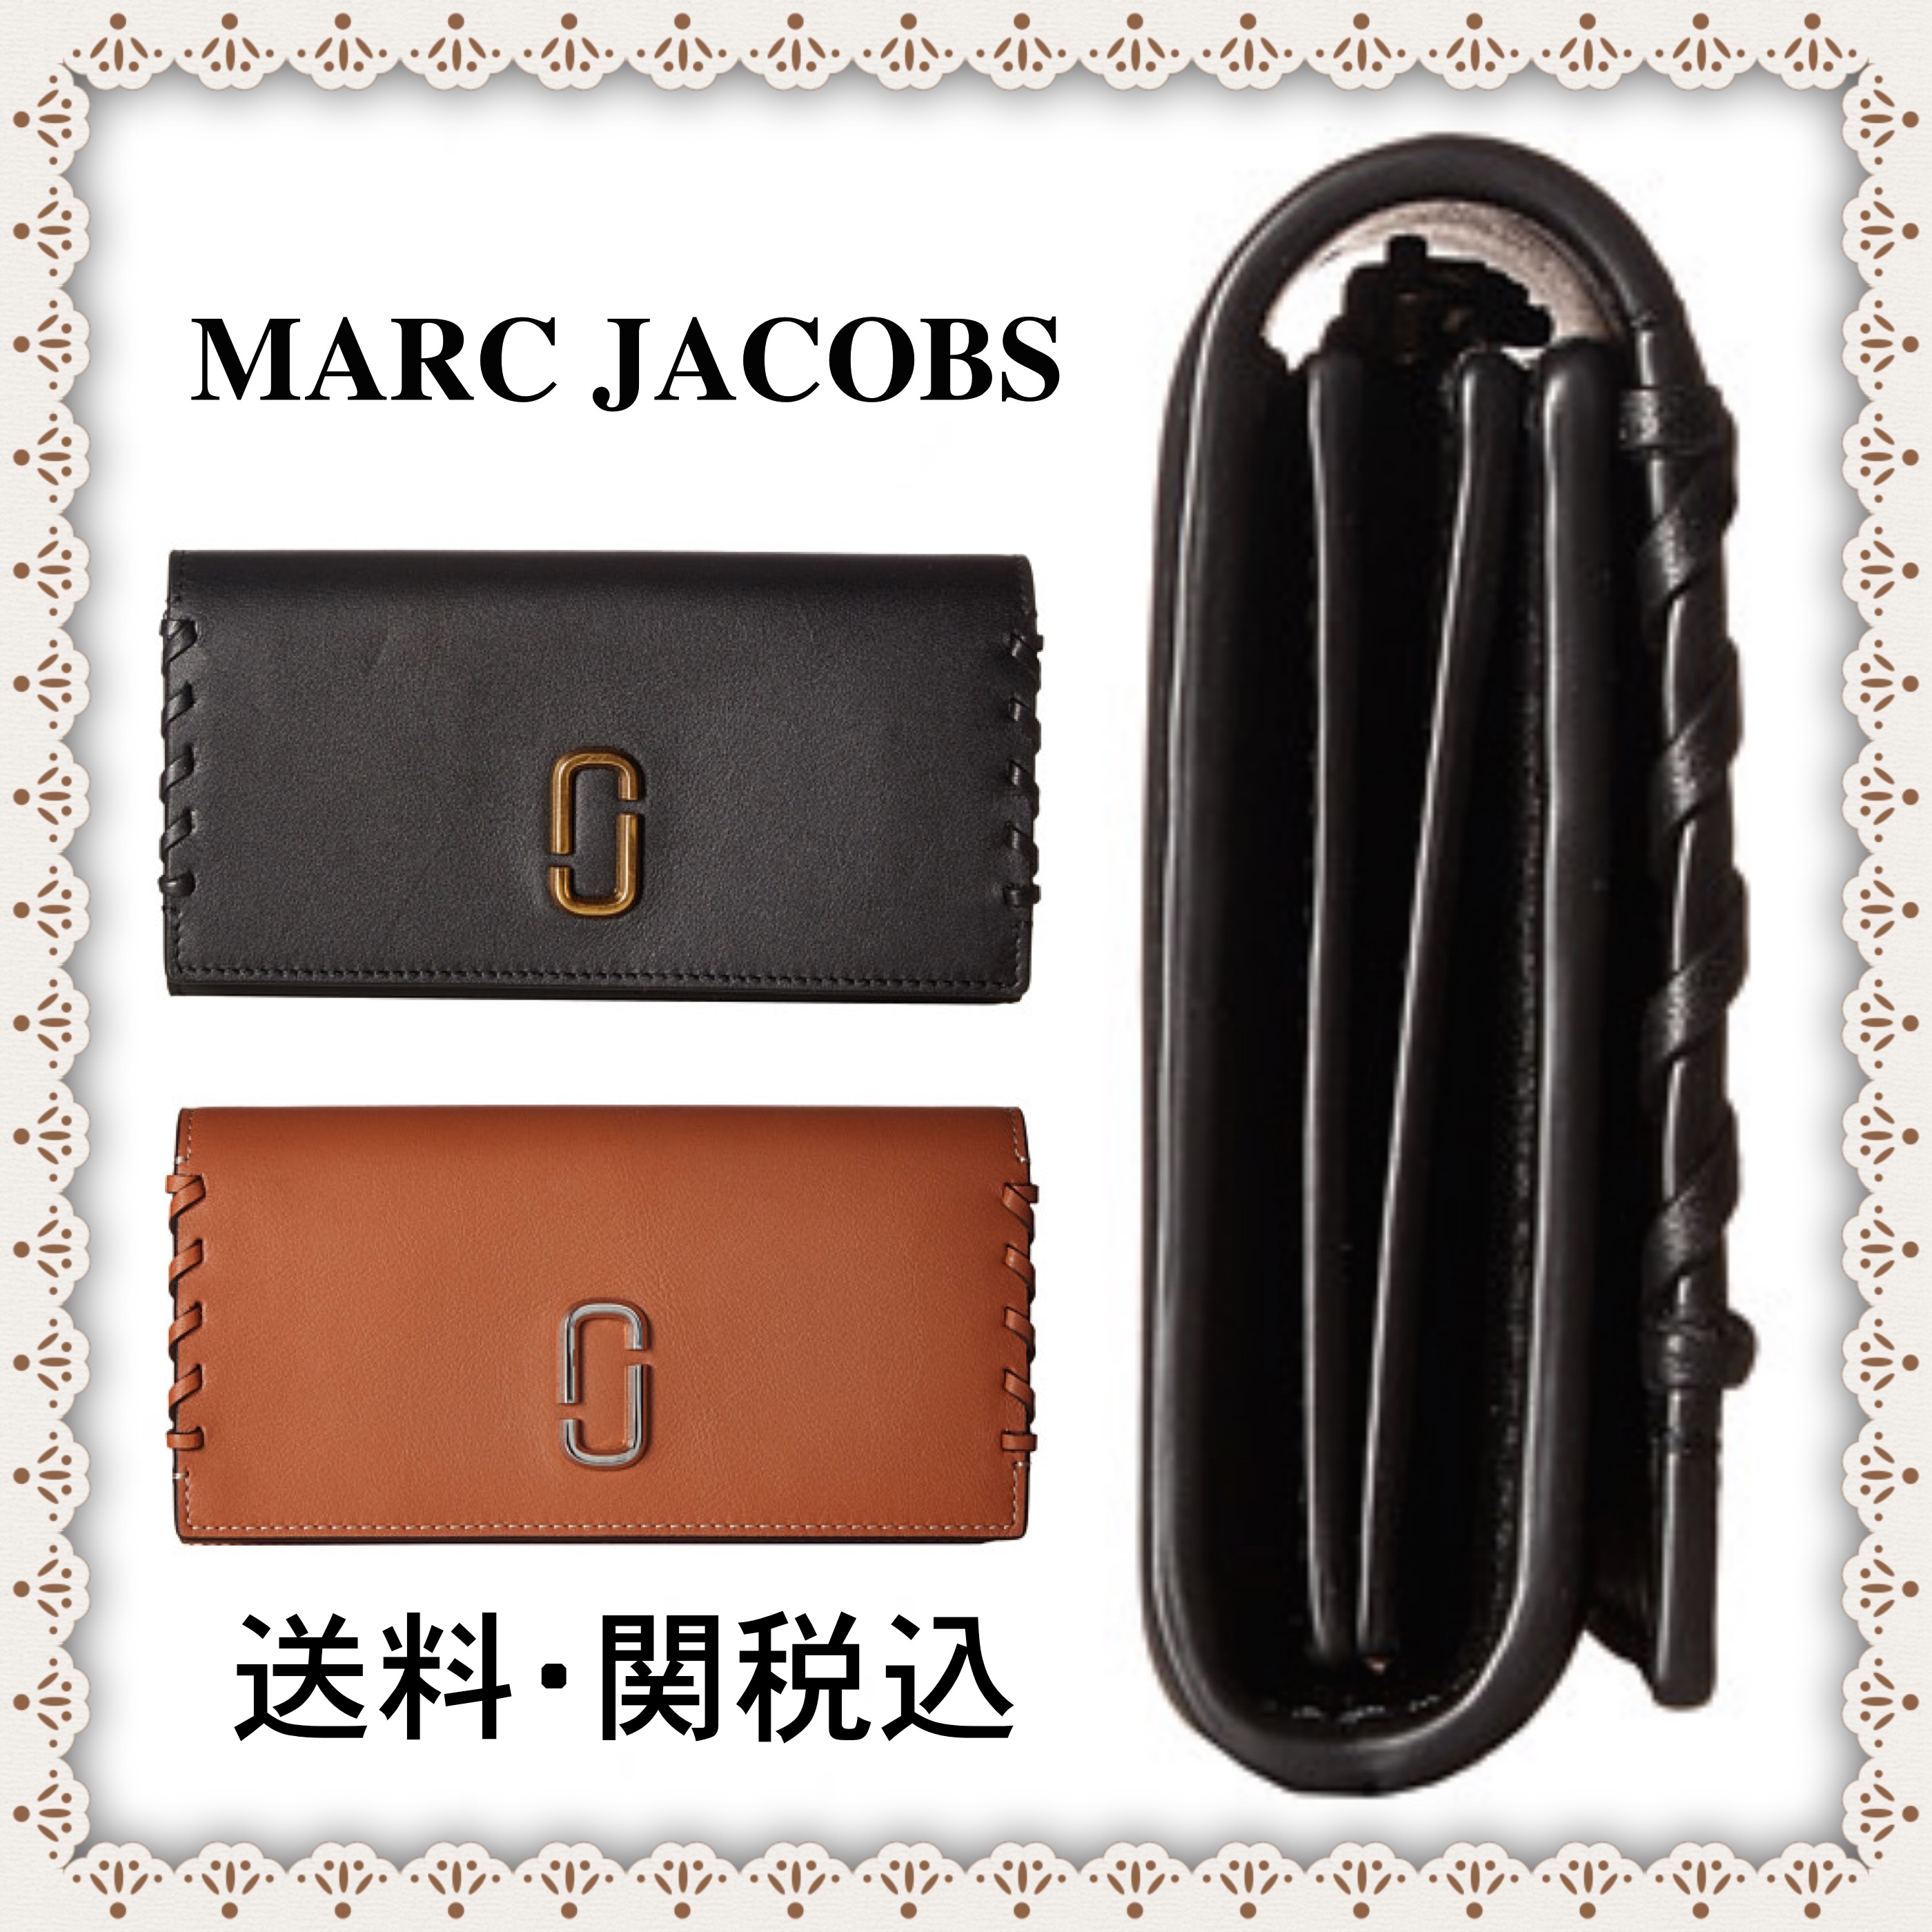 《関税・送料込み》♡ Marc Jacobs Noho Flap Continental